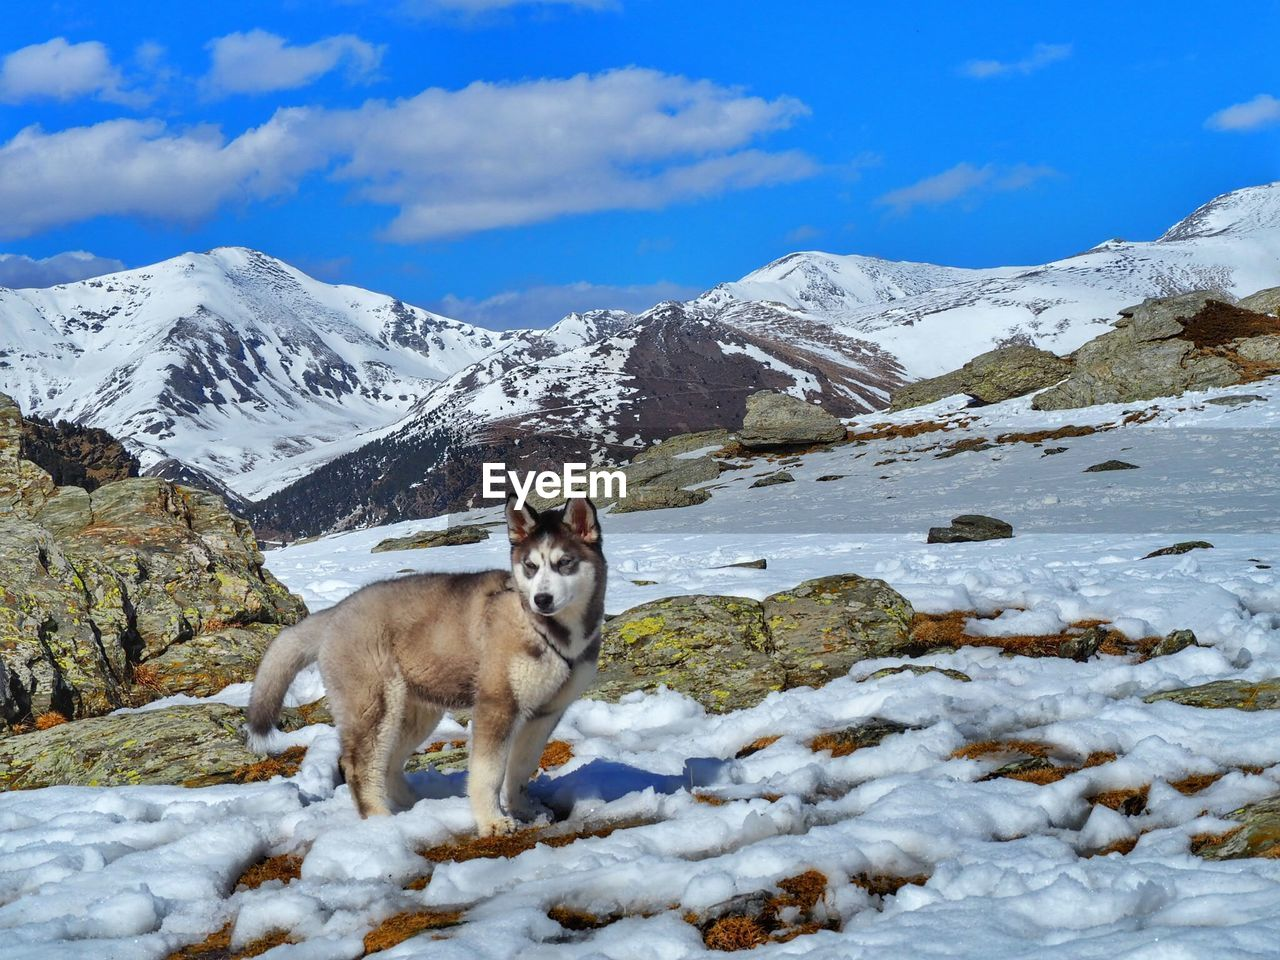 Dog standing on snow covered landscape